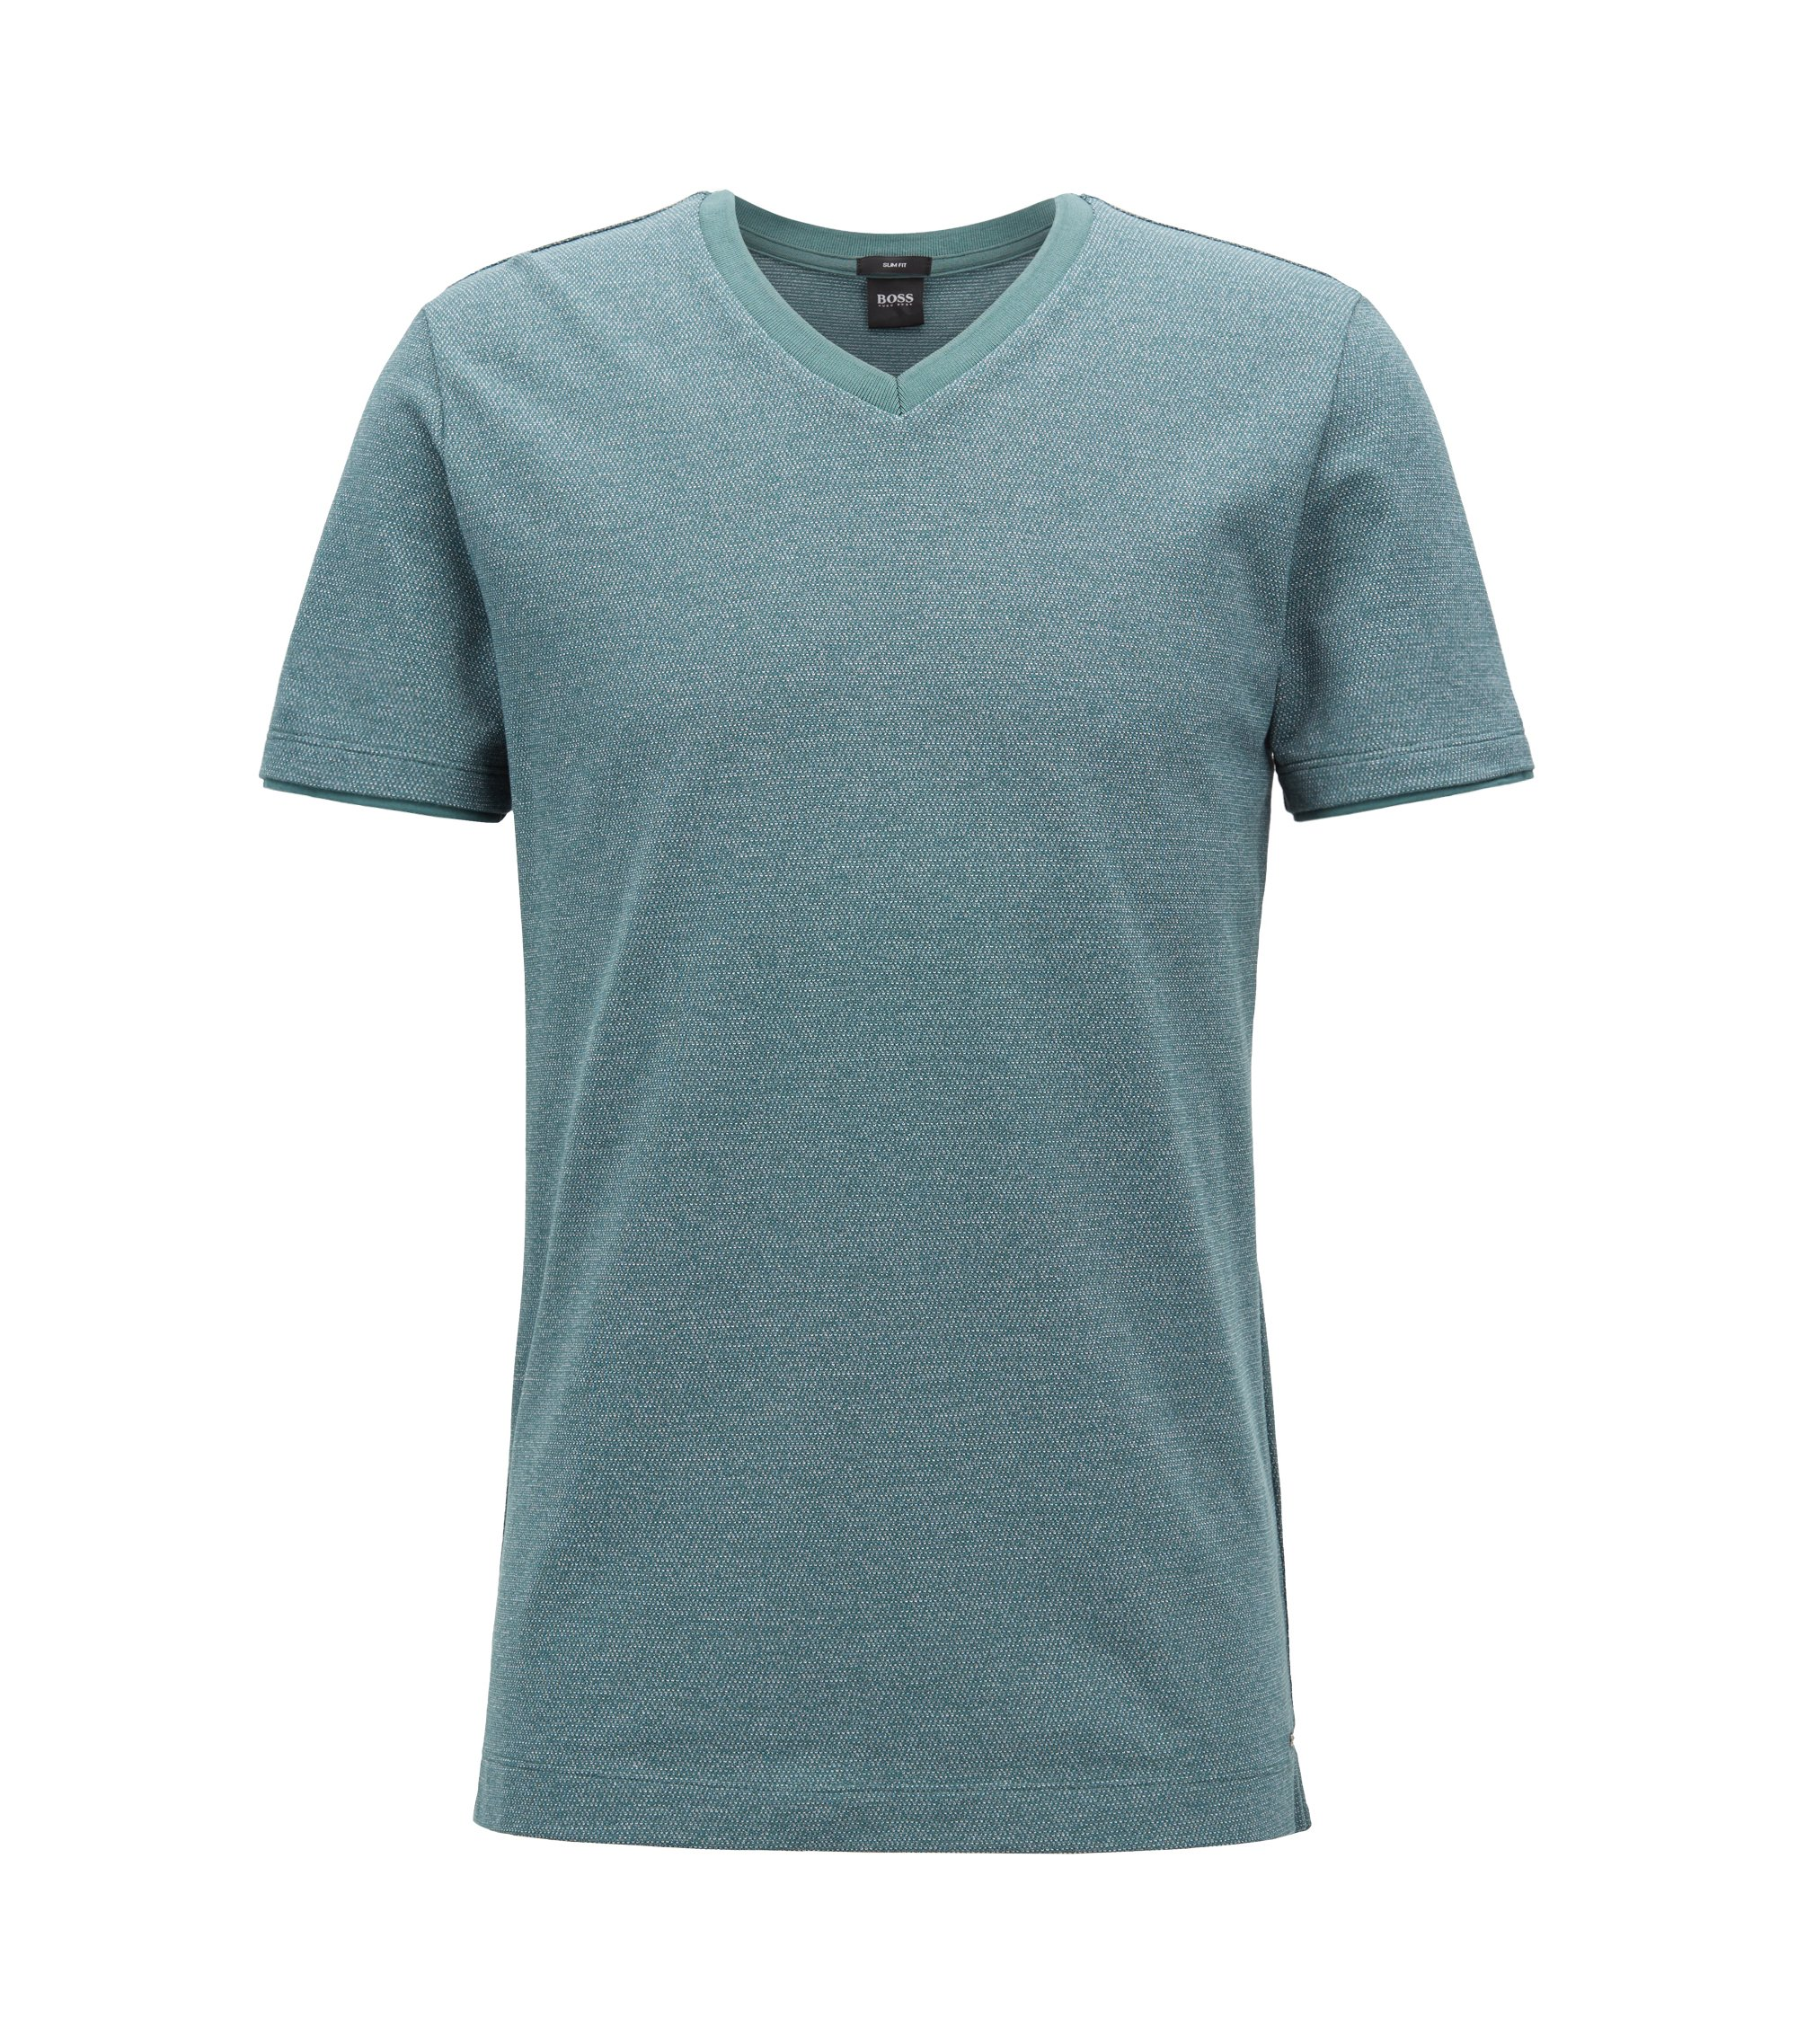 V-neck T-shirt in yarn-dyed mouliné cotton, Dark Green